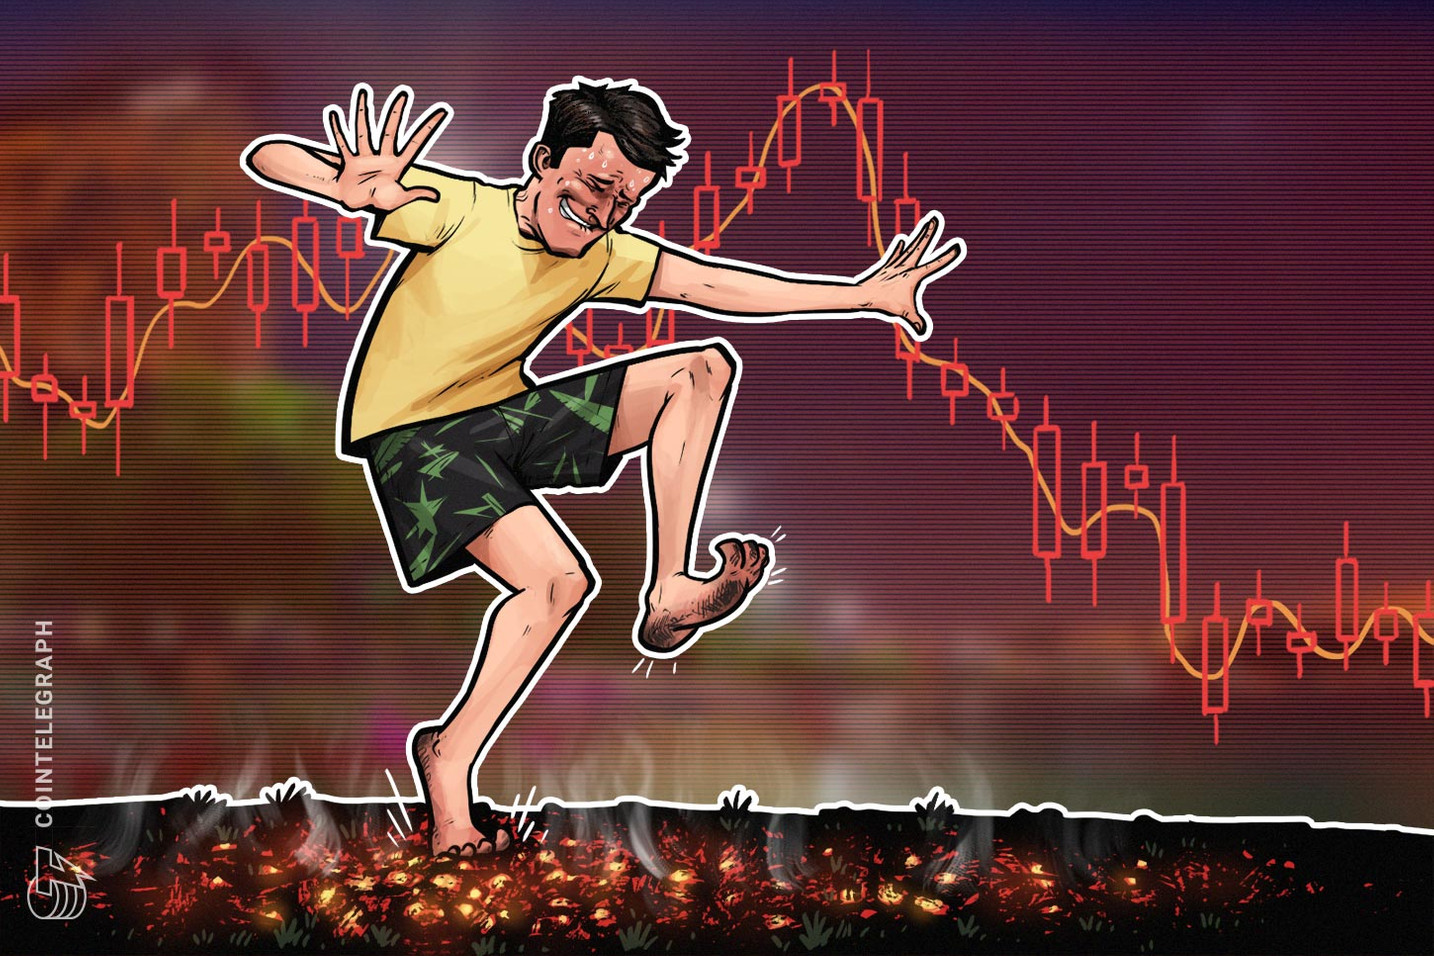 Markets See Red Following BTC ETF Rejections, News of Anti-Crypto Measures in China